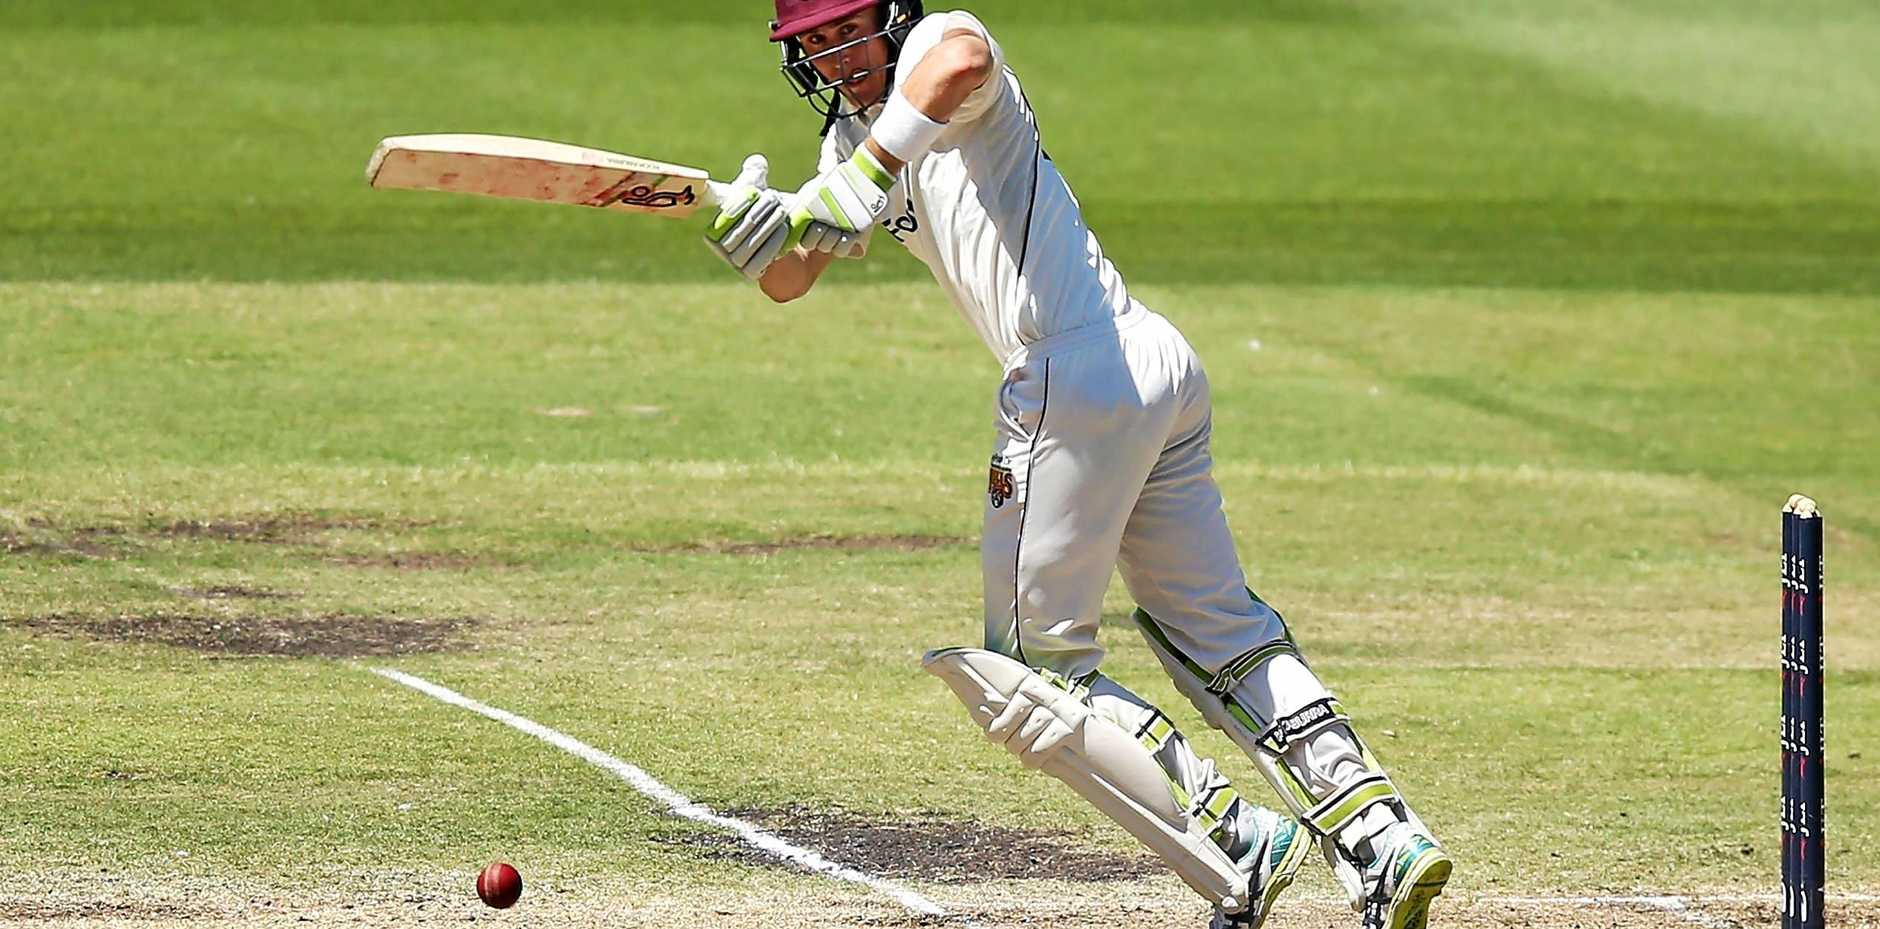 Marnus Labuschagne of Queensland on his way to 100 not out on day four at the MCG.